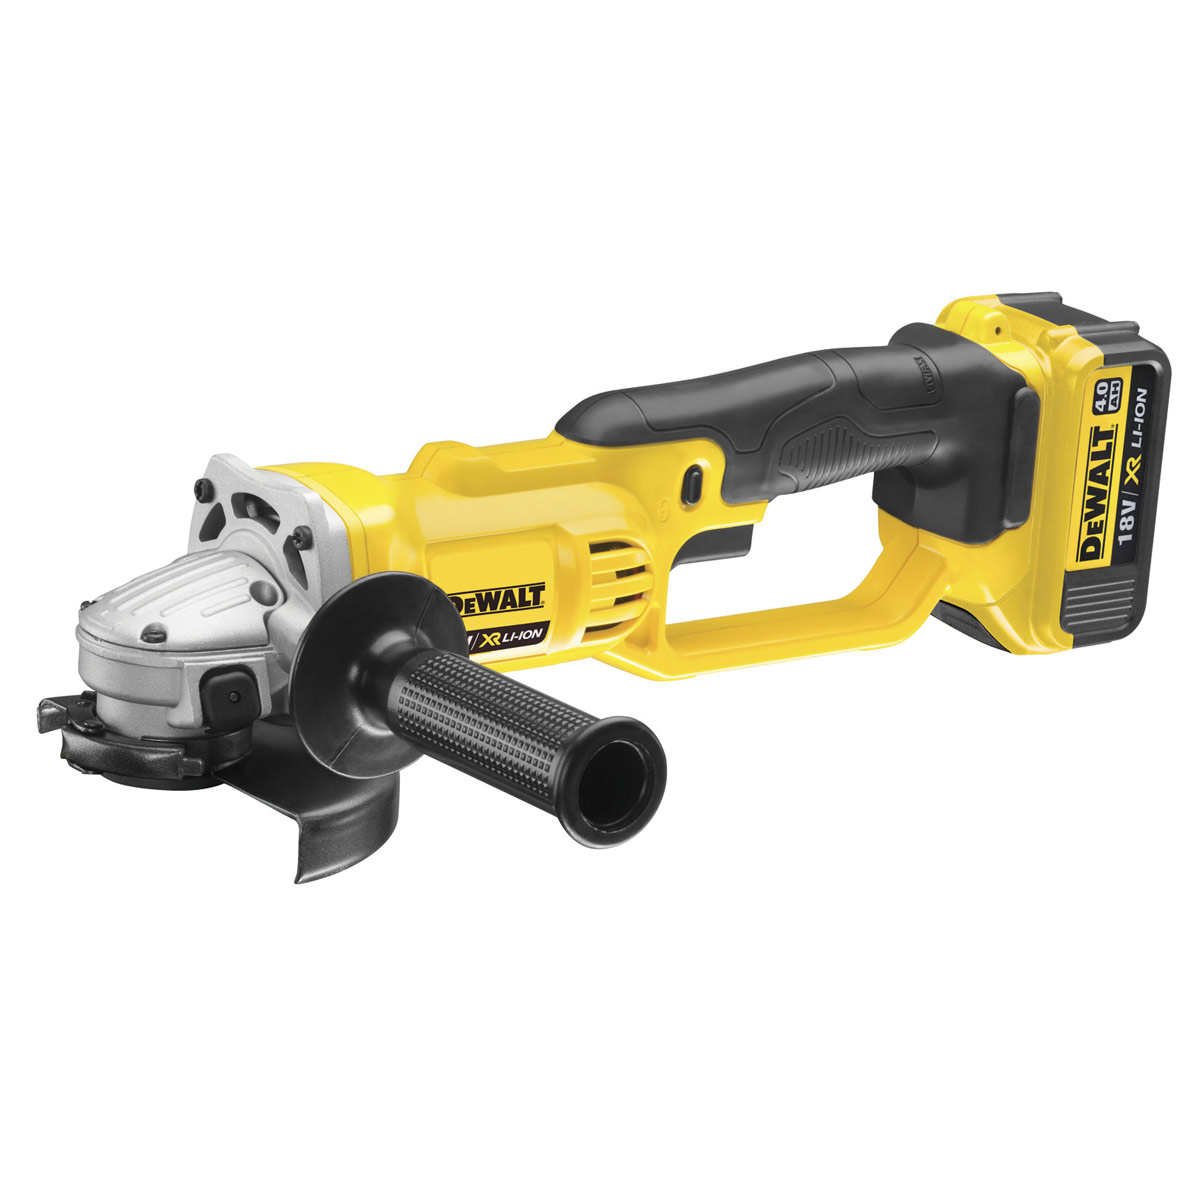 DEWALT DCG412M2 18V XR 125MM ANGLE GRINDER WITH 2 x 4.0AH LI-ION BATTERIES